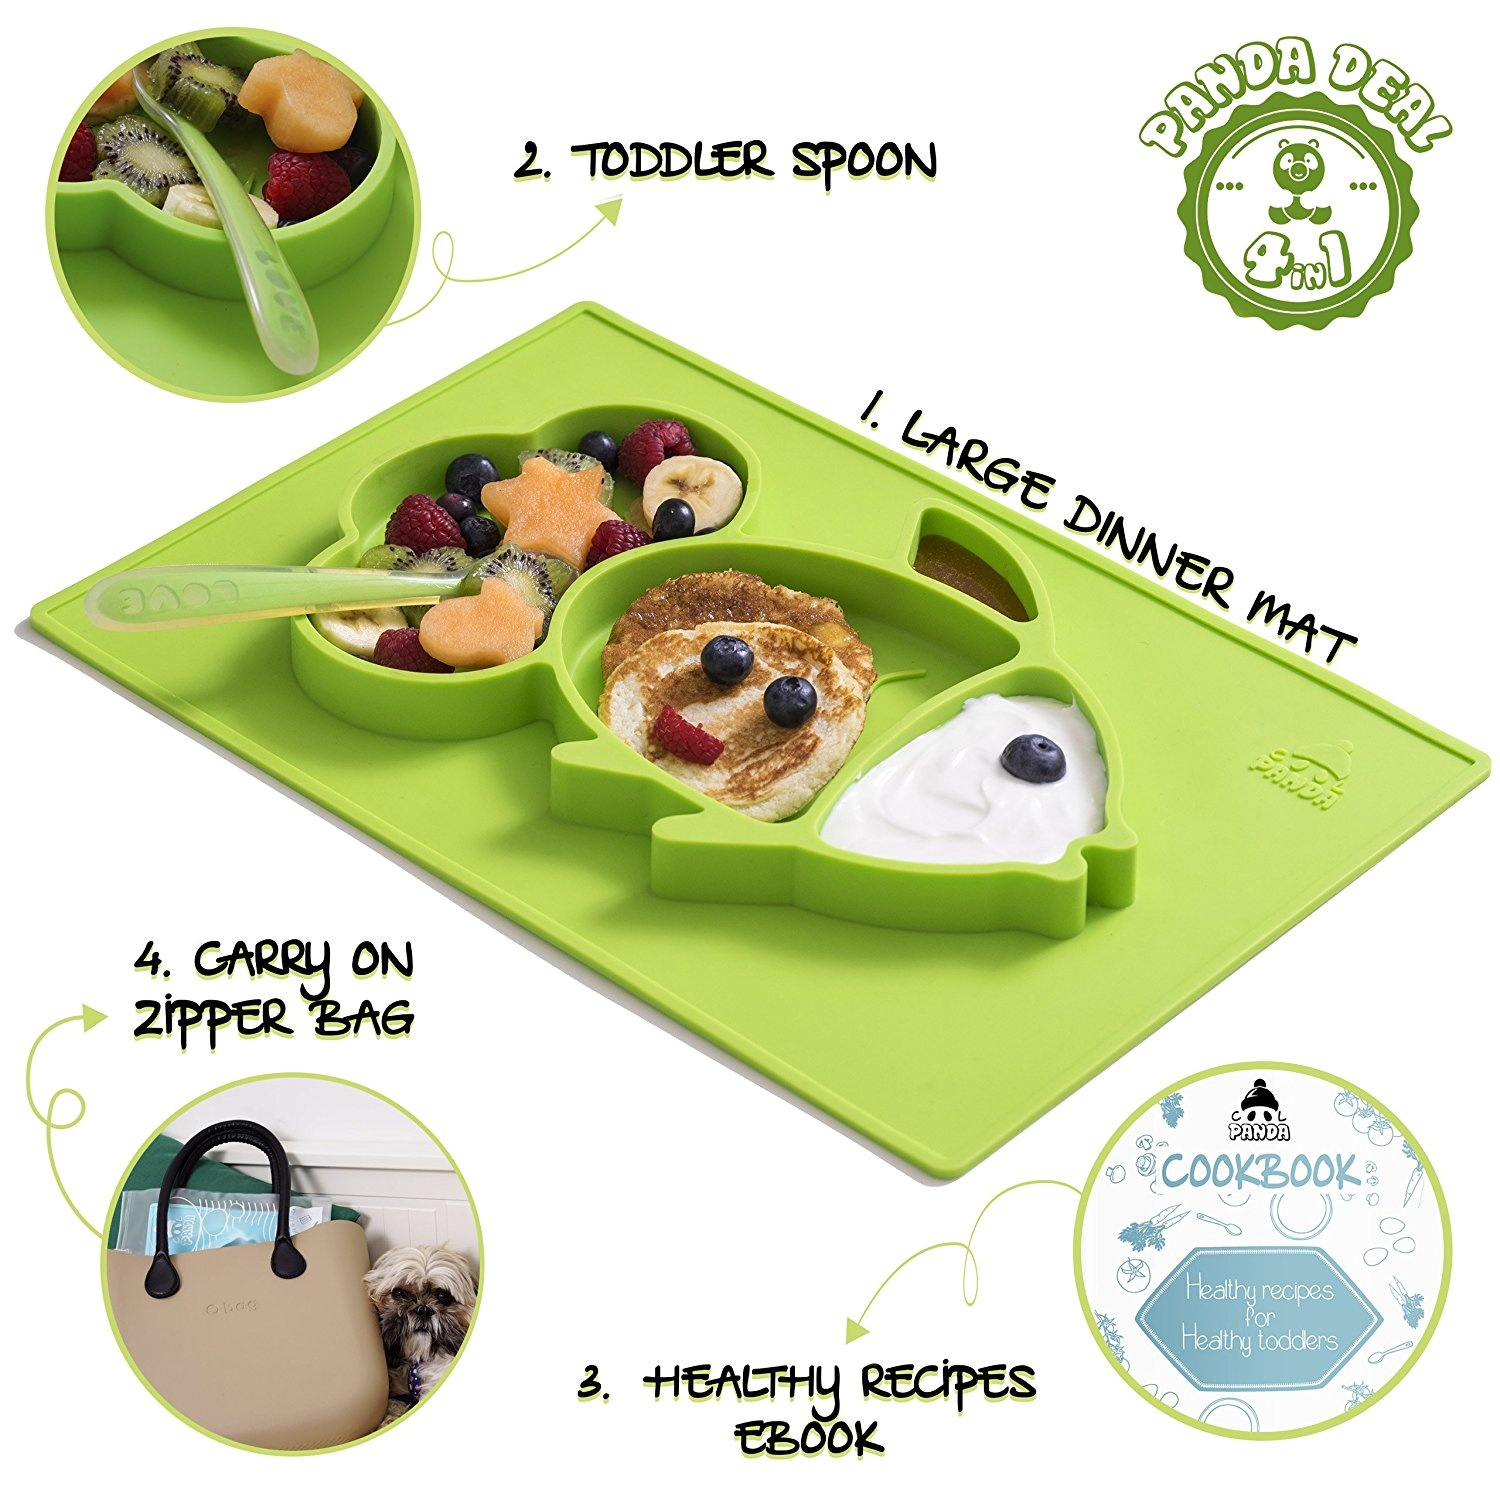 Silicone Baby Spoons Buy Online From Boon Squirt Green Kiwi